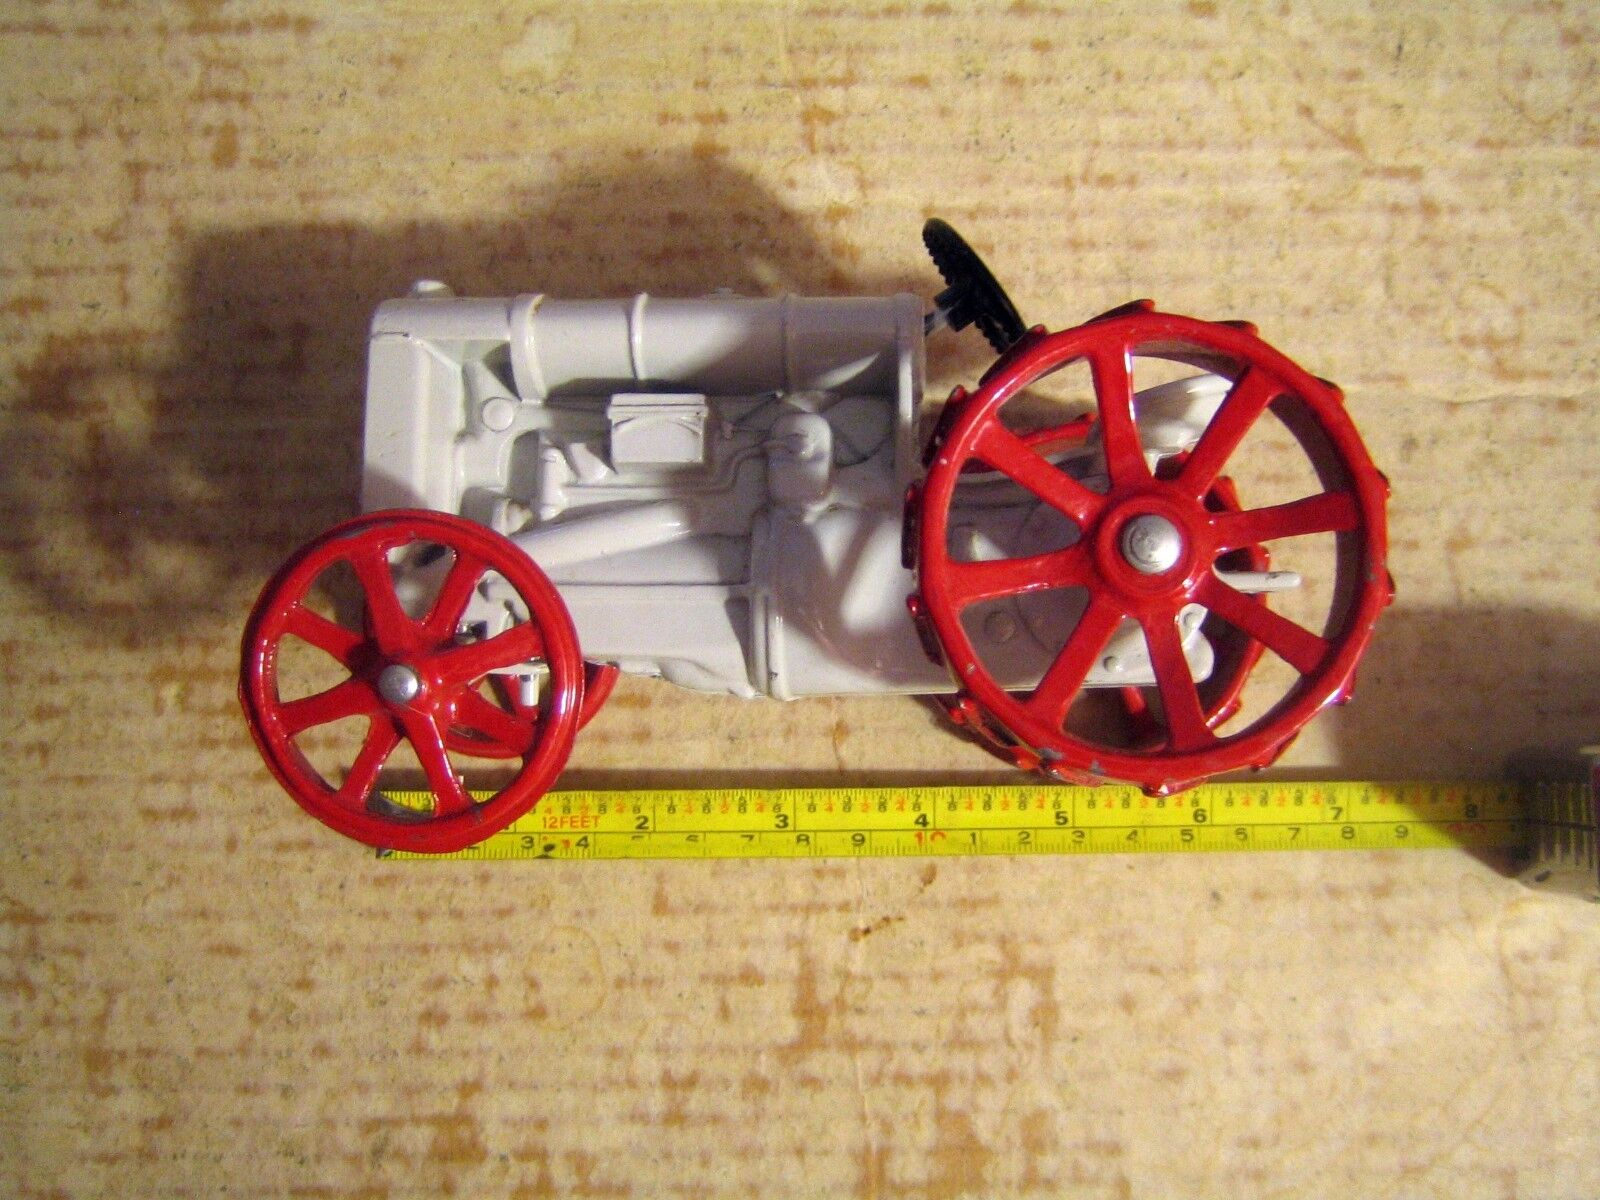 1 RARE HTF COLLECTABLE VINTAGE ERTL FORDSON ANTIQUE 1 16 SCALE DIE-CAST TRACTOR